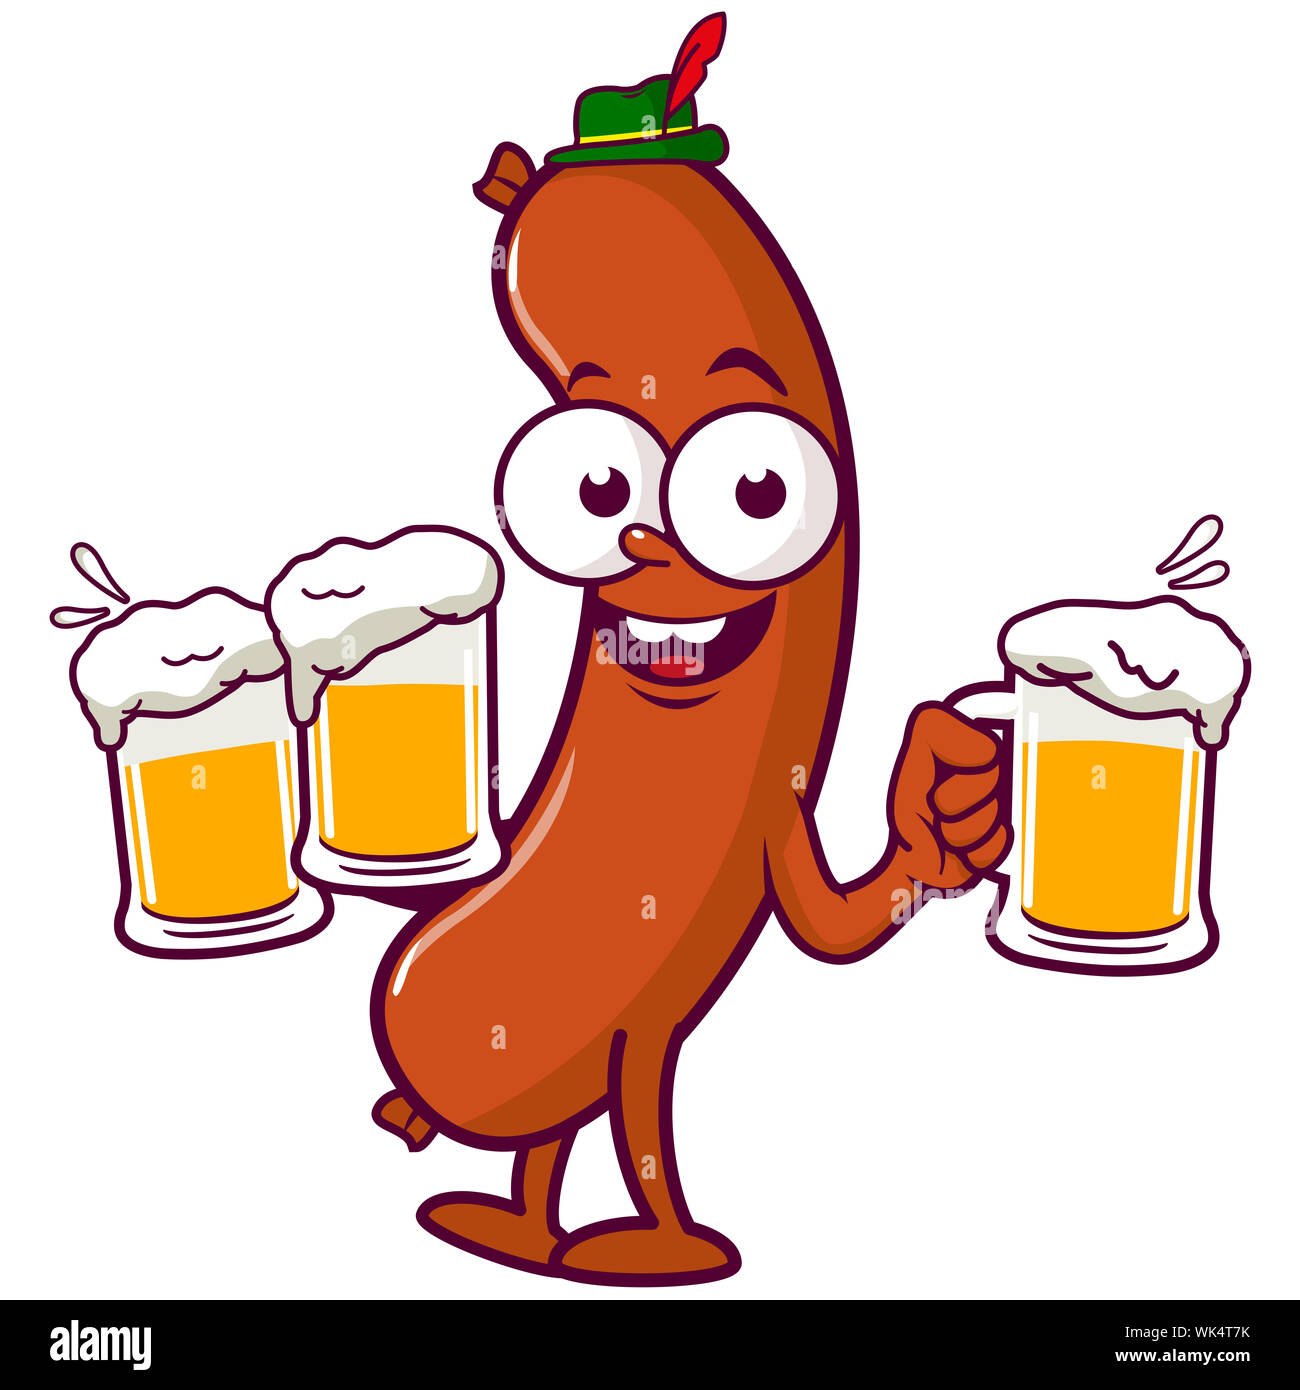 Cartoon sausage with a traditional German hat, holding cold glasses of beer at Oktoberfest. Stock Photo